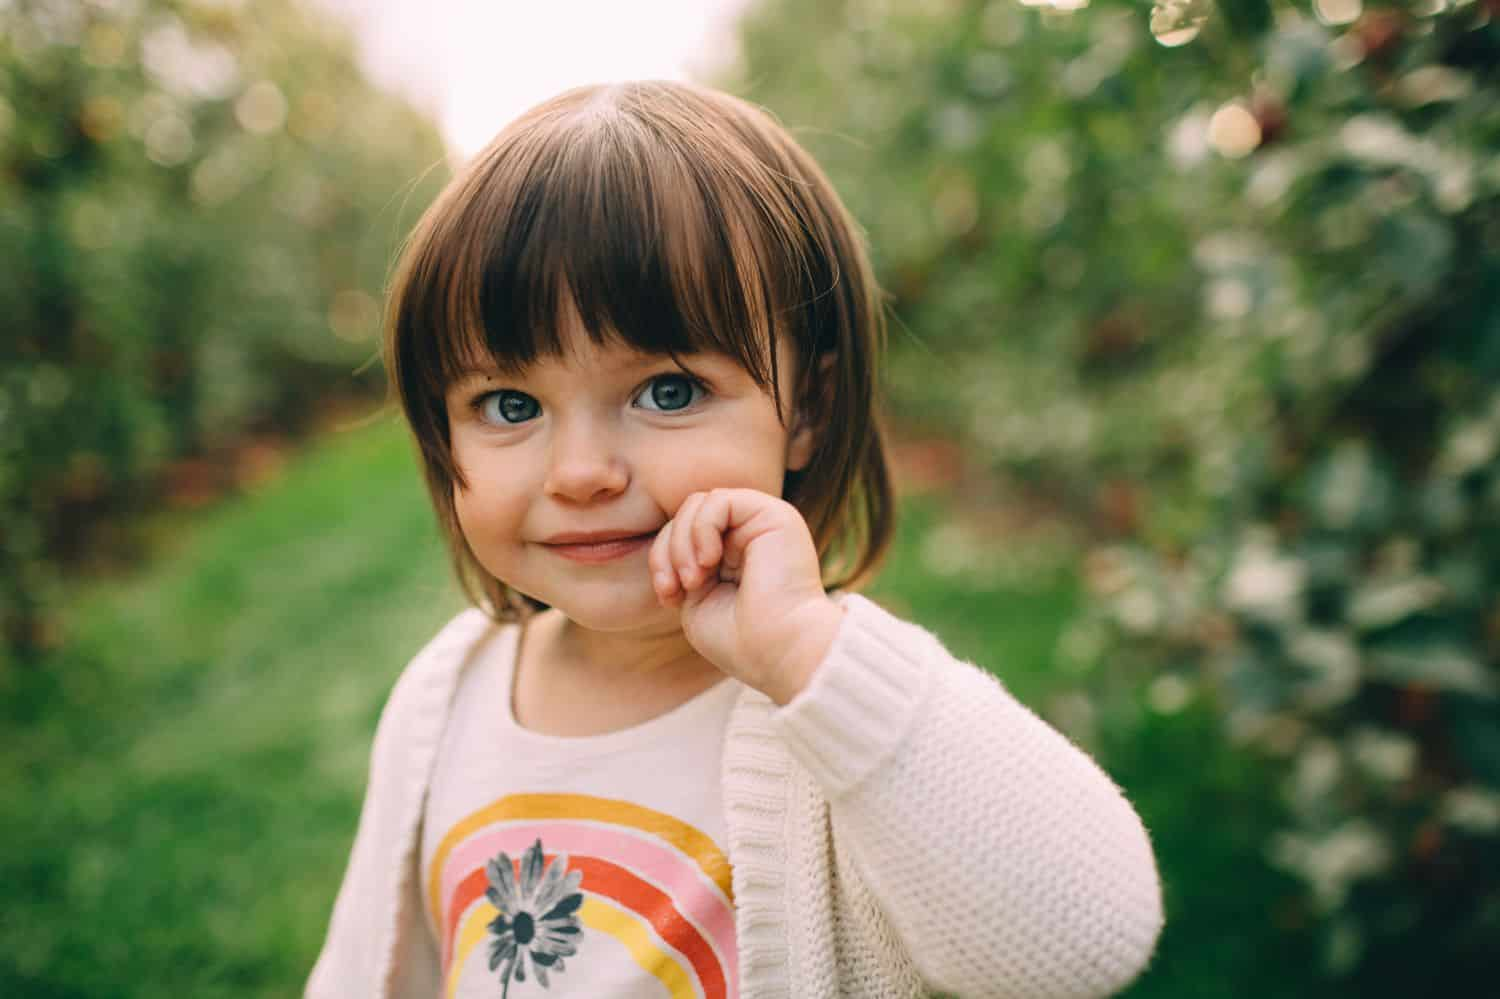 A little girl wearing a rainbow t-shirt stands in an apple orchard.